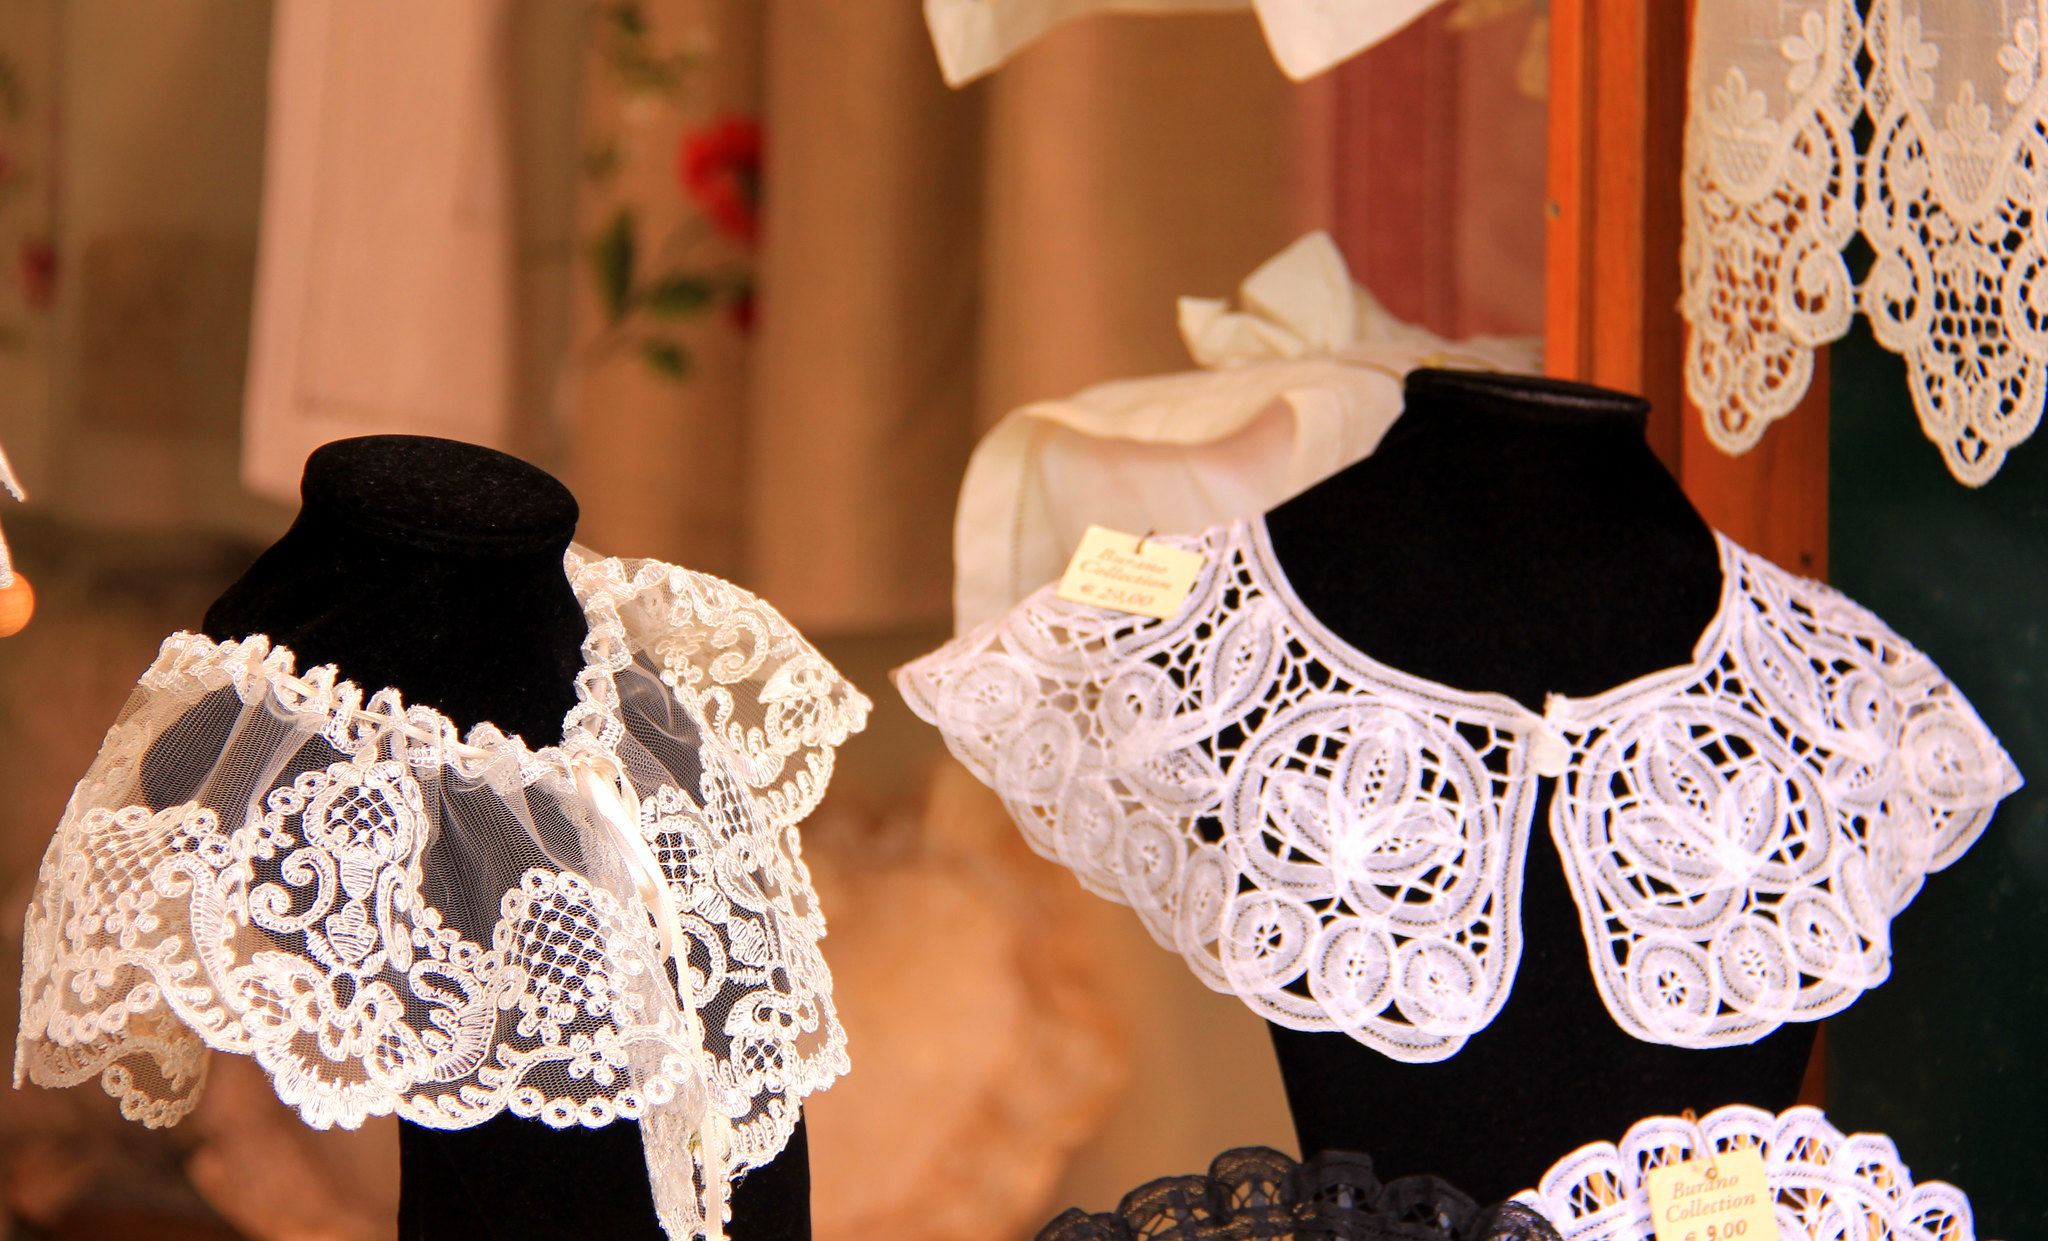 Murano island is famous for lace making.